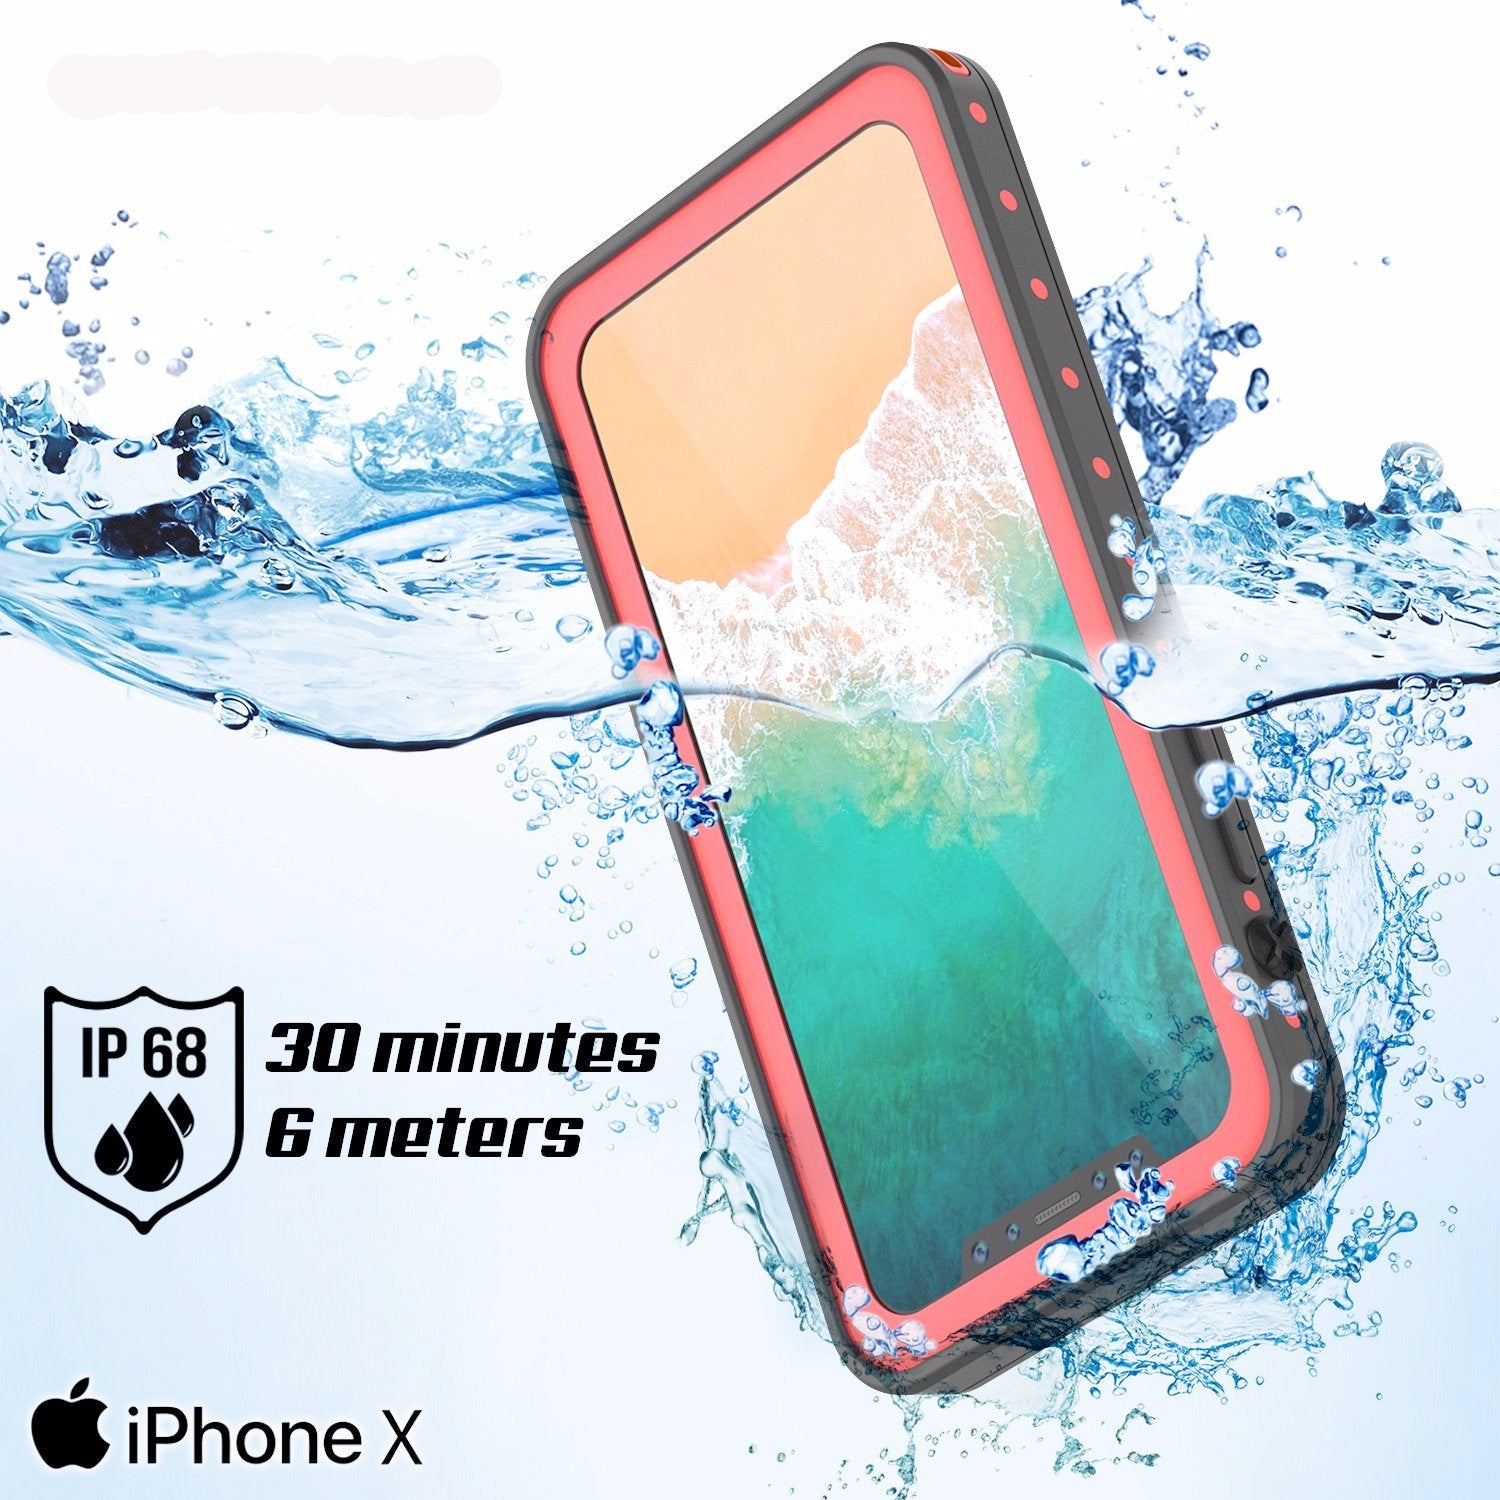 iPhone X Waterproof IP68 Case, Punkcase [Purple] [StudStar Series] [Slim Fit] [Dirtproof]